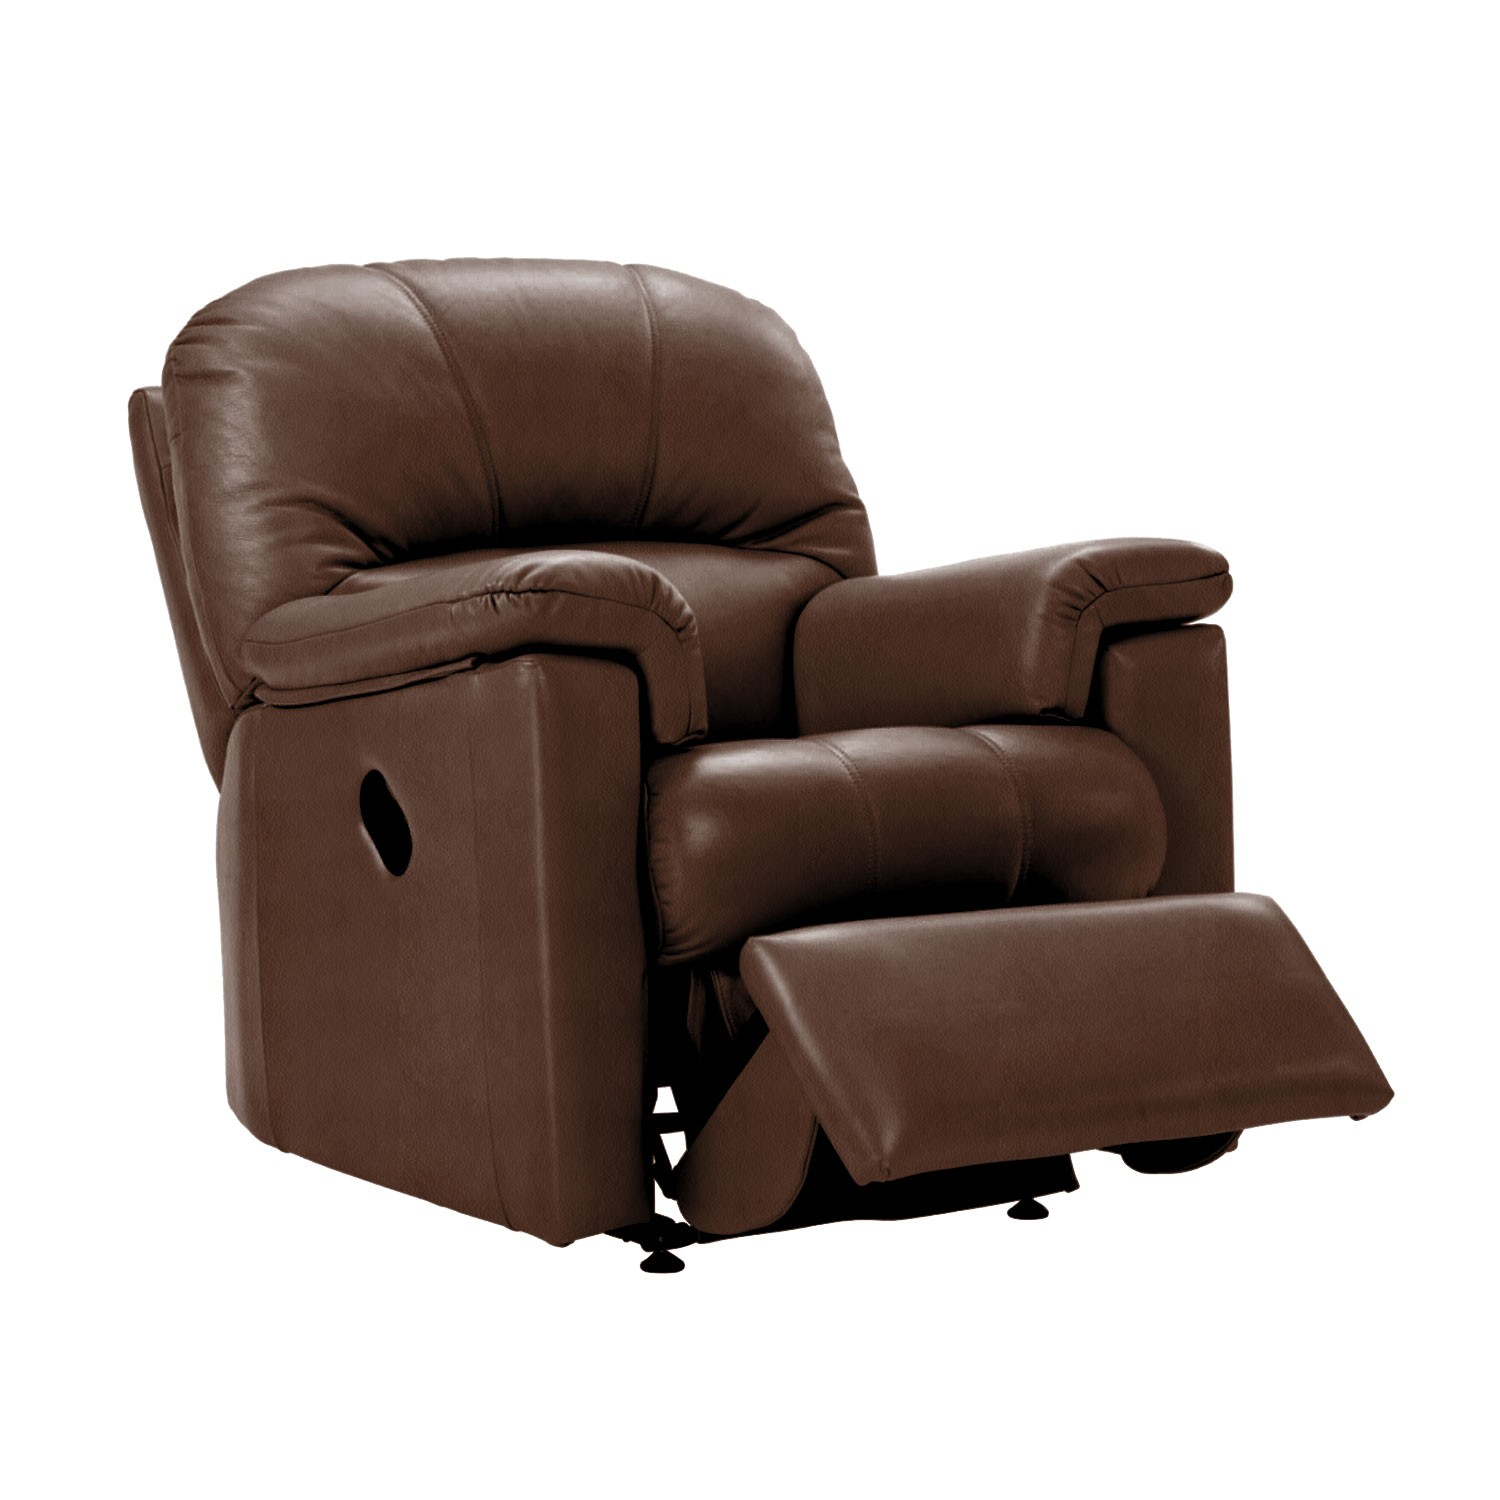 G Plan Chloe Power Recliner Leather Armchair, Small | Leekes